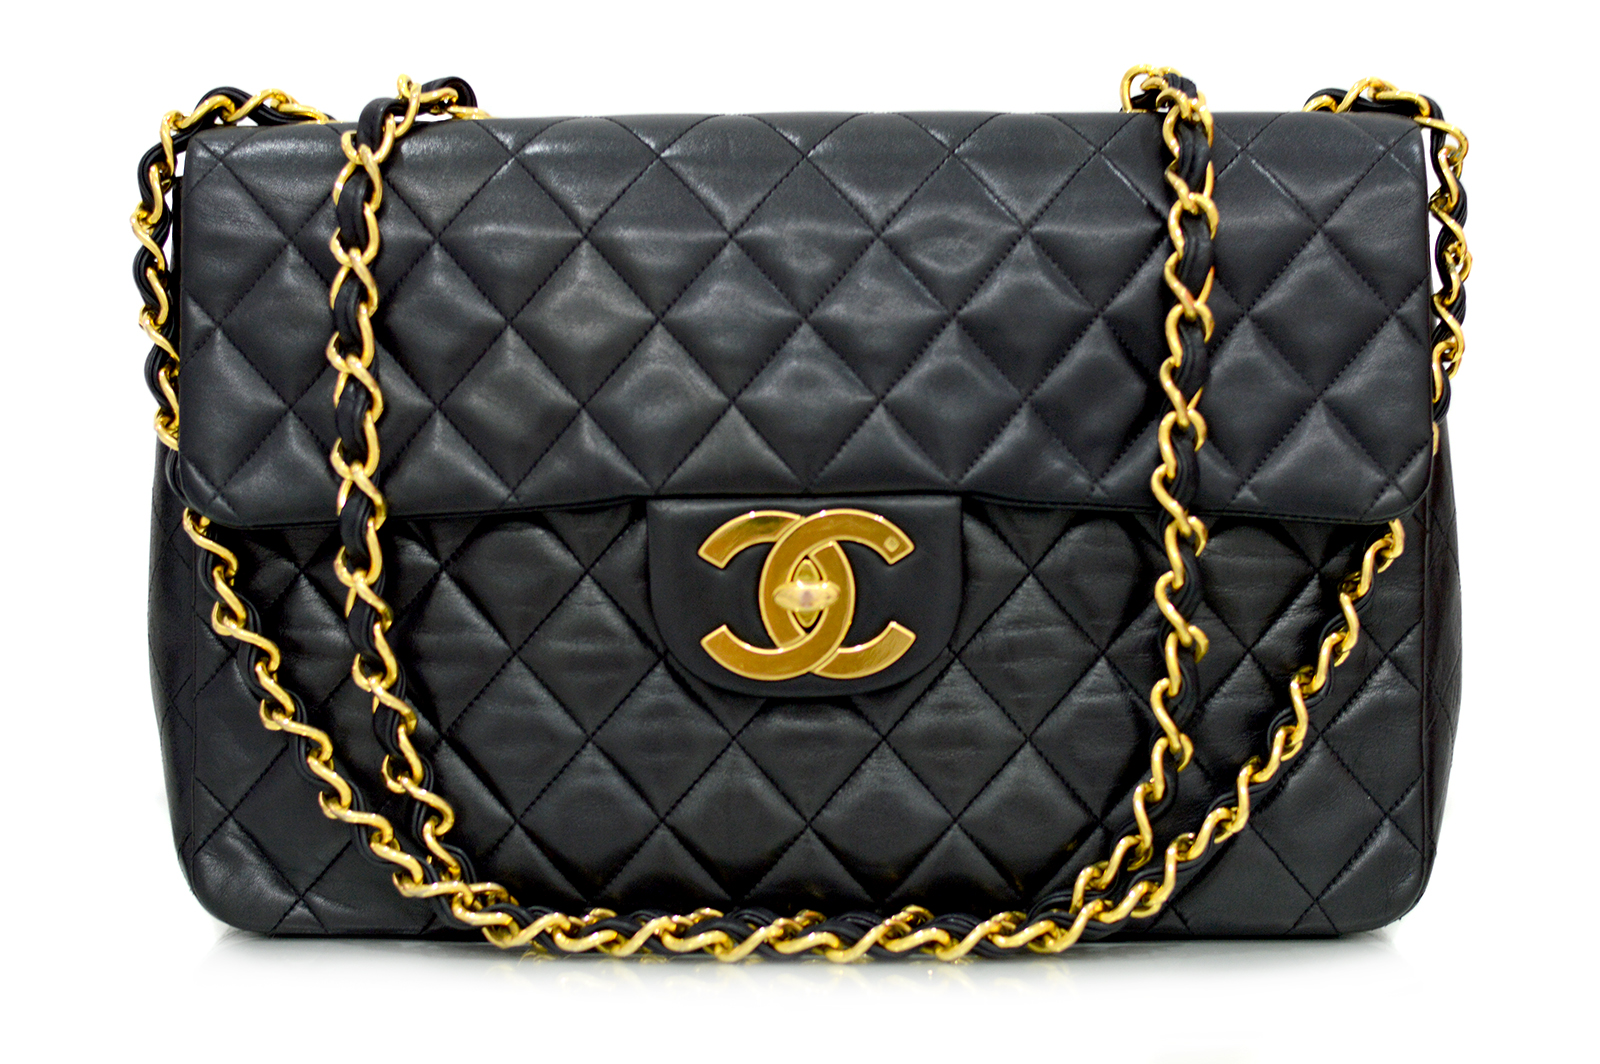 c8a613efb13 Chanel Maxi Jumbo Flap Bag – SASA AVENUE